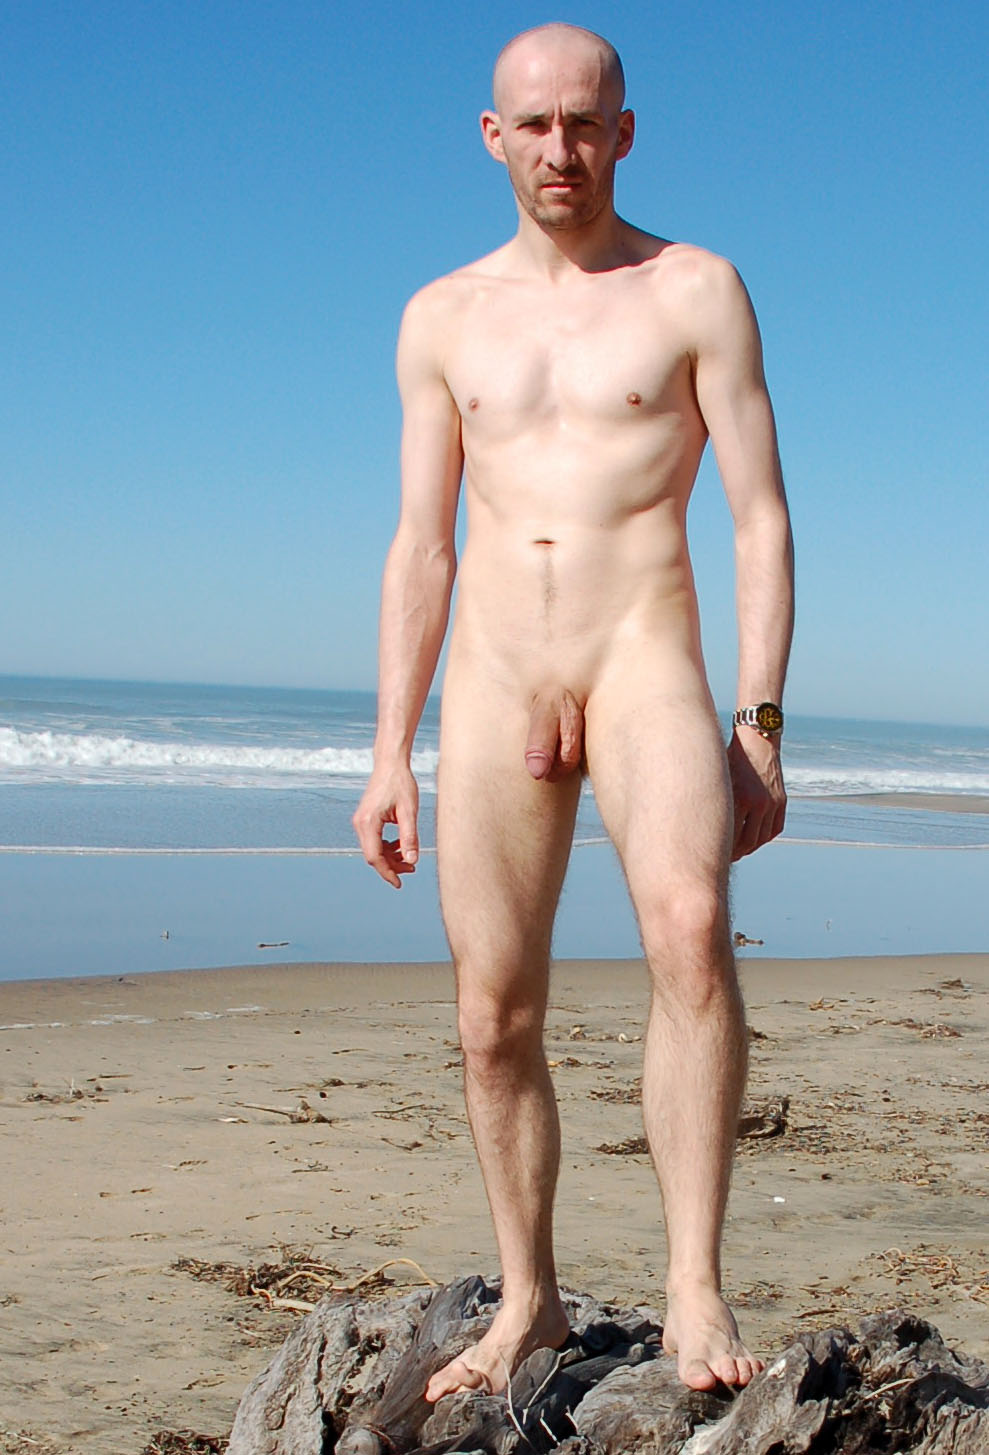 jude law?beach nude